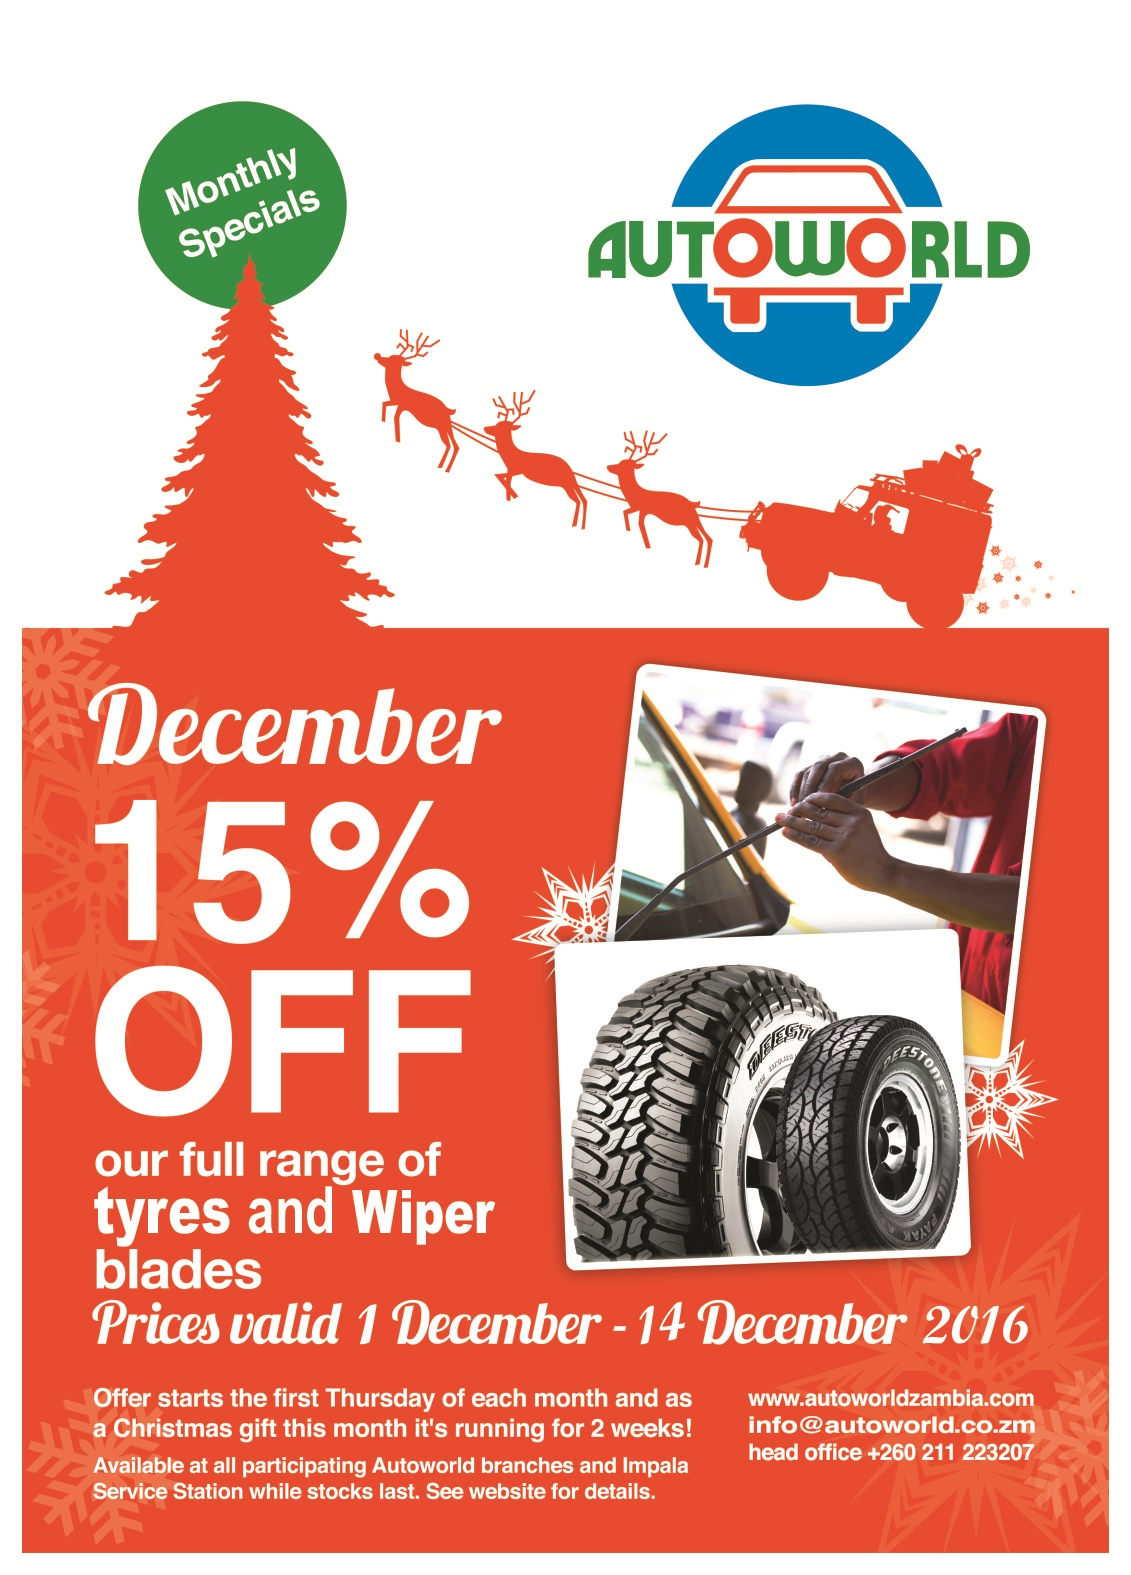 December 2016 special offer on Tyres and Wiper blades